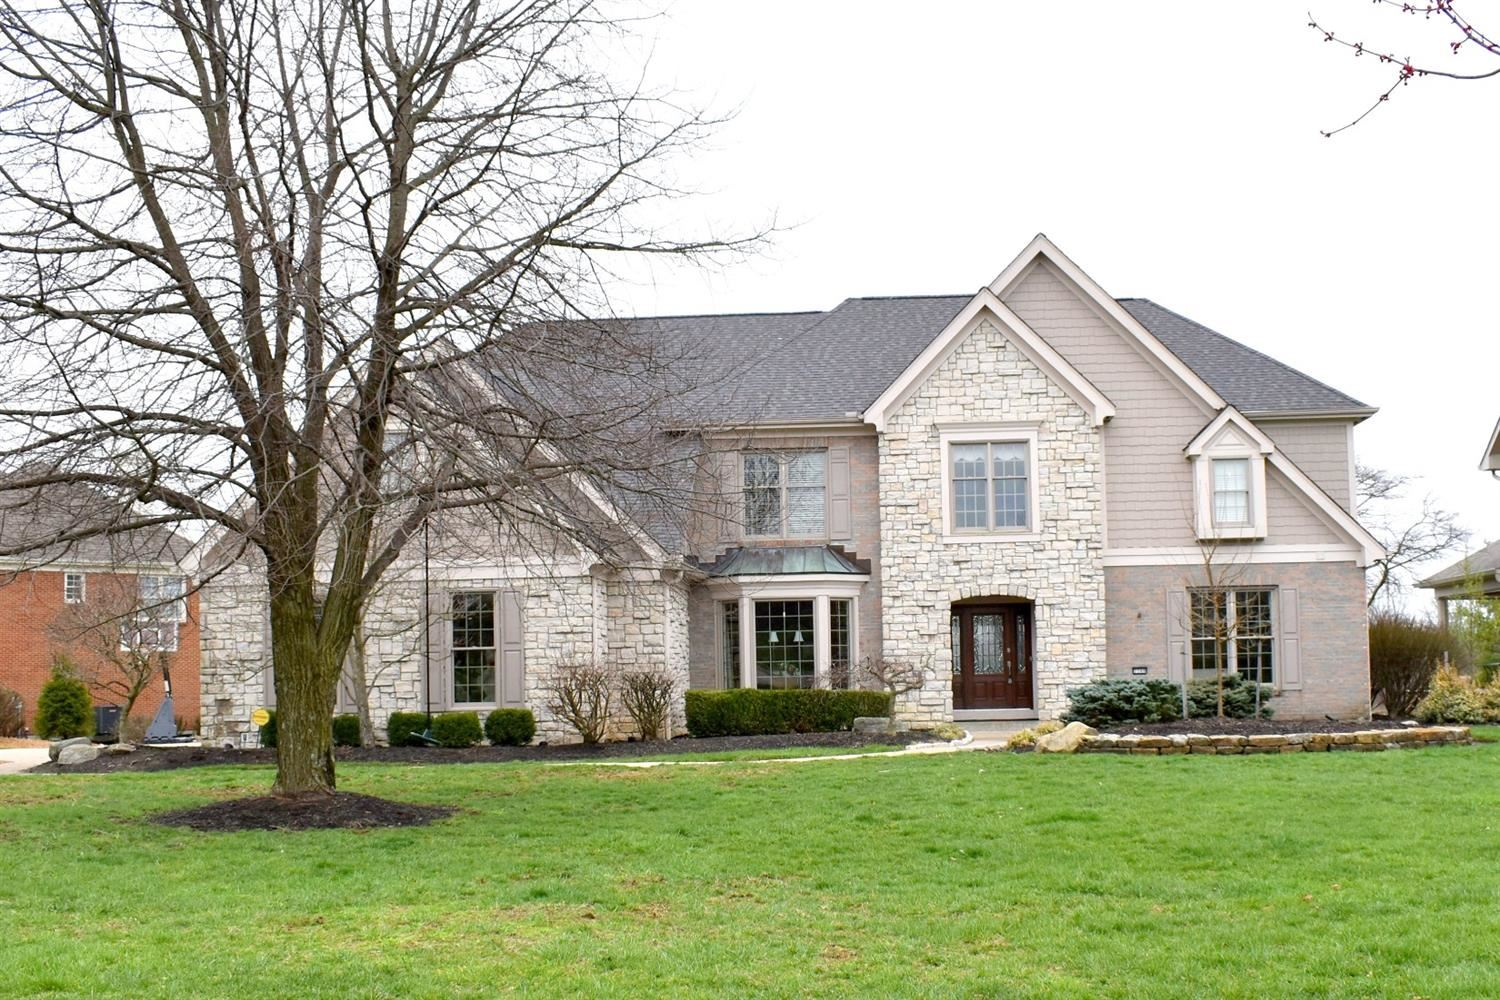 7269 Charter Cup Lane, West Chester, OH 45069 - #: 1664551